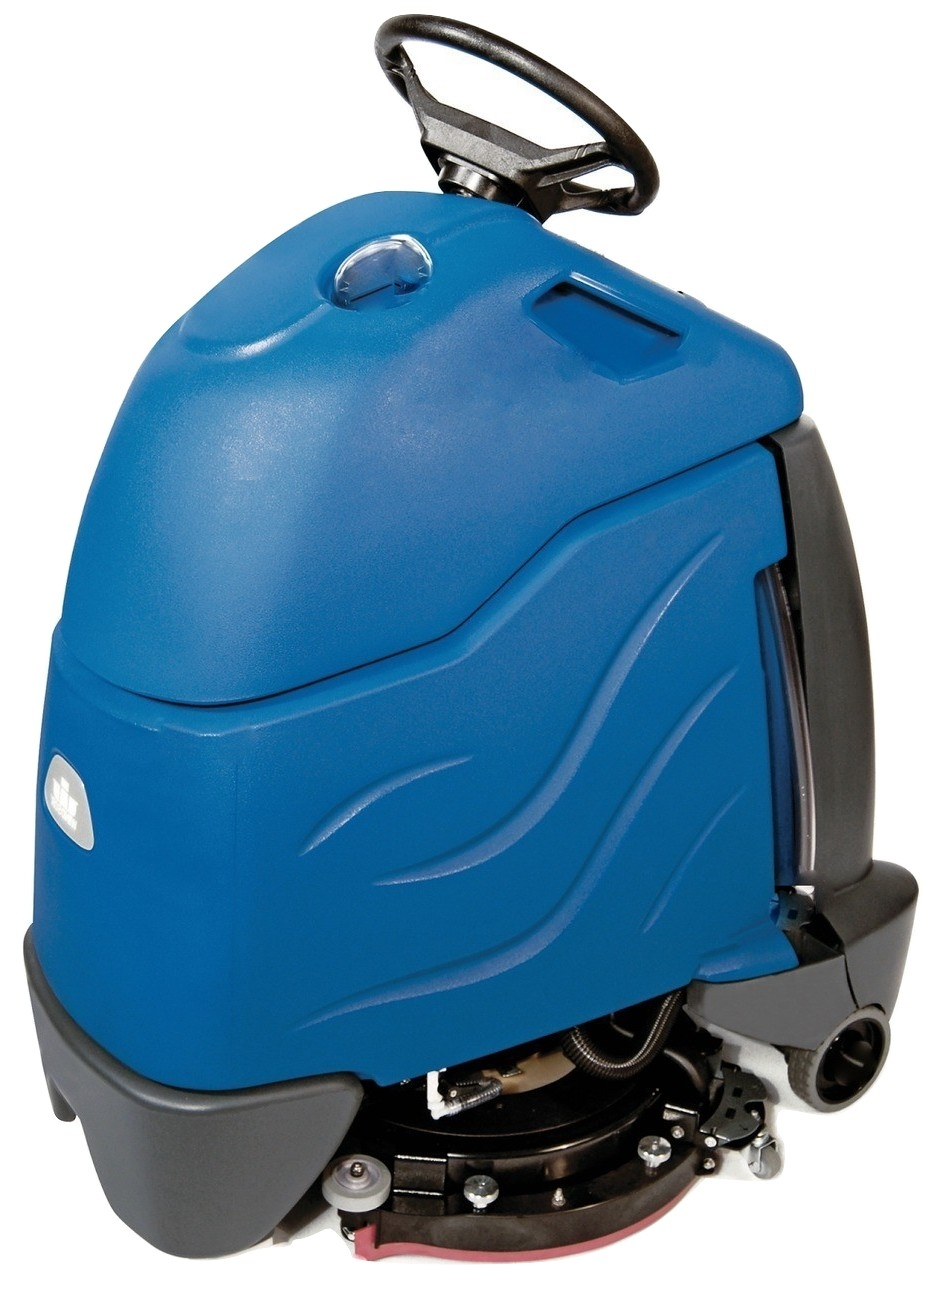 Windsor Chariot iScrub CSC20 20 Inch Stand On Floor Scrubber